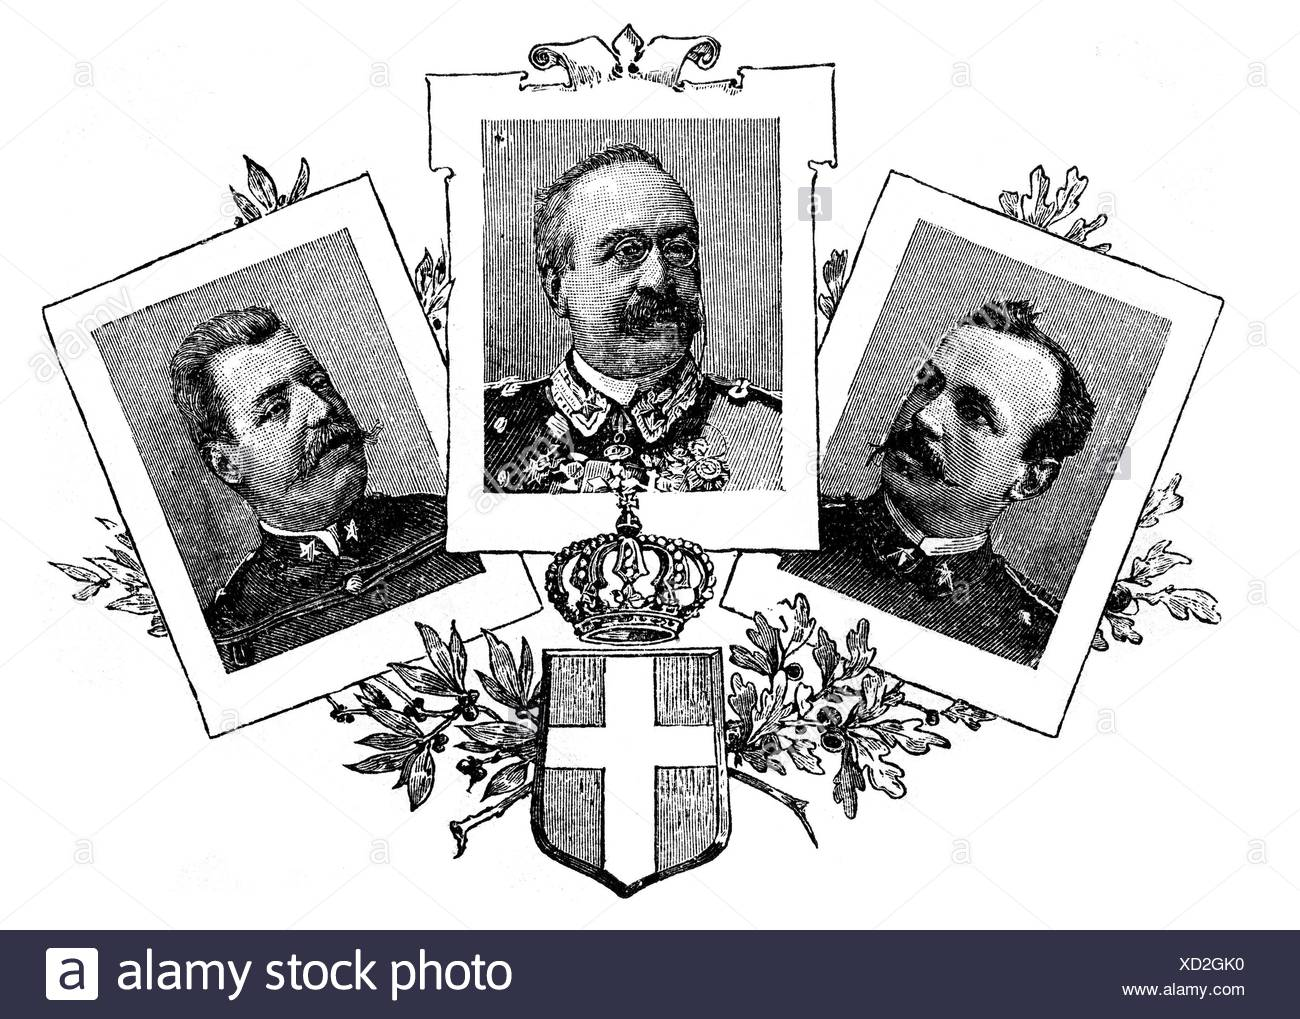 Baratieri, Oreste, 13.11.1841 - 8.8.1901, Italian general, portrait, with portraits of two other officers who took part in the First Italo-Ethiopian War, wood engraving, late 19th century, Additional-Rights-Clearances-NA - Stock Image